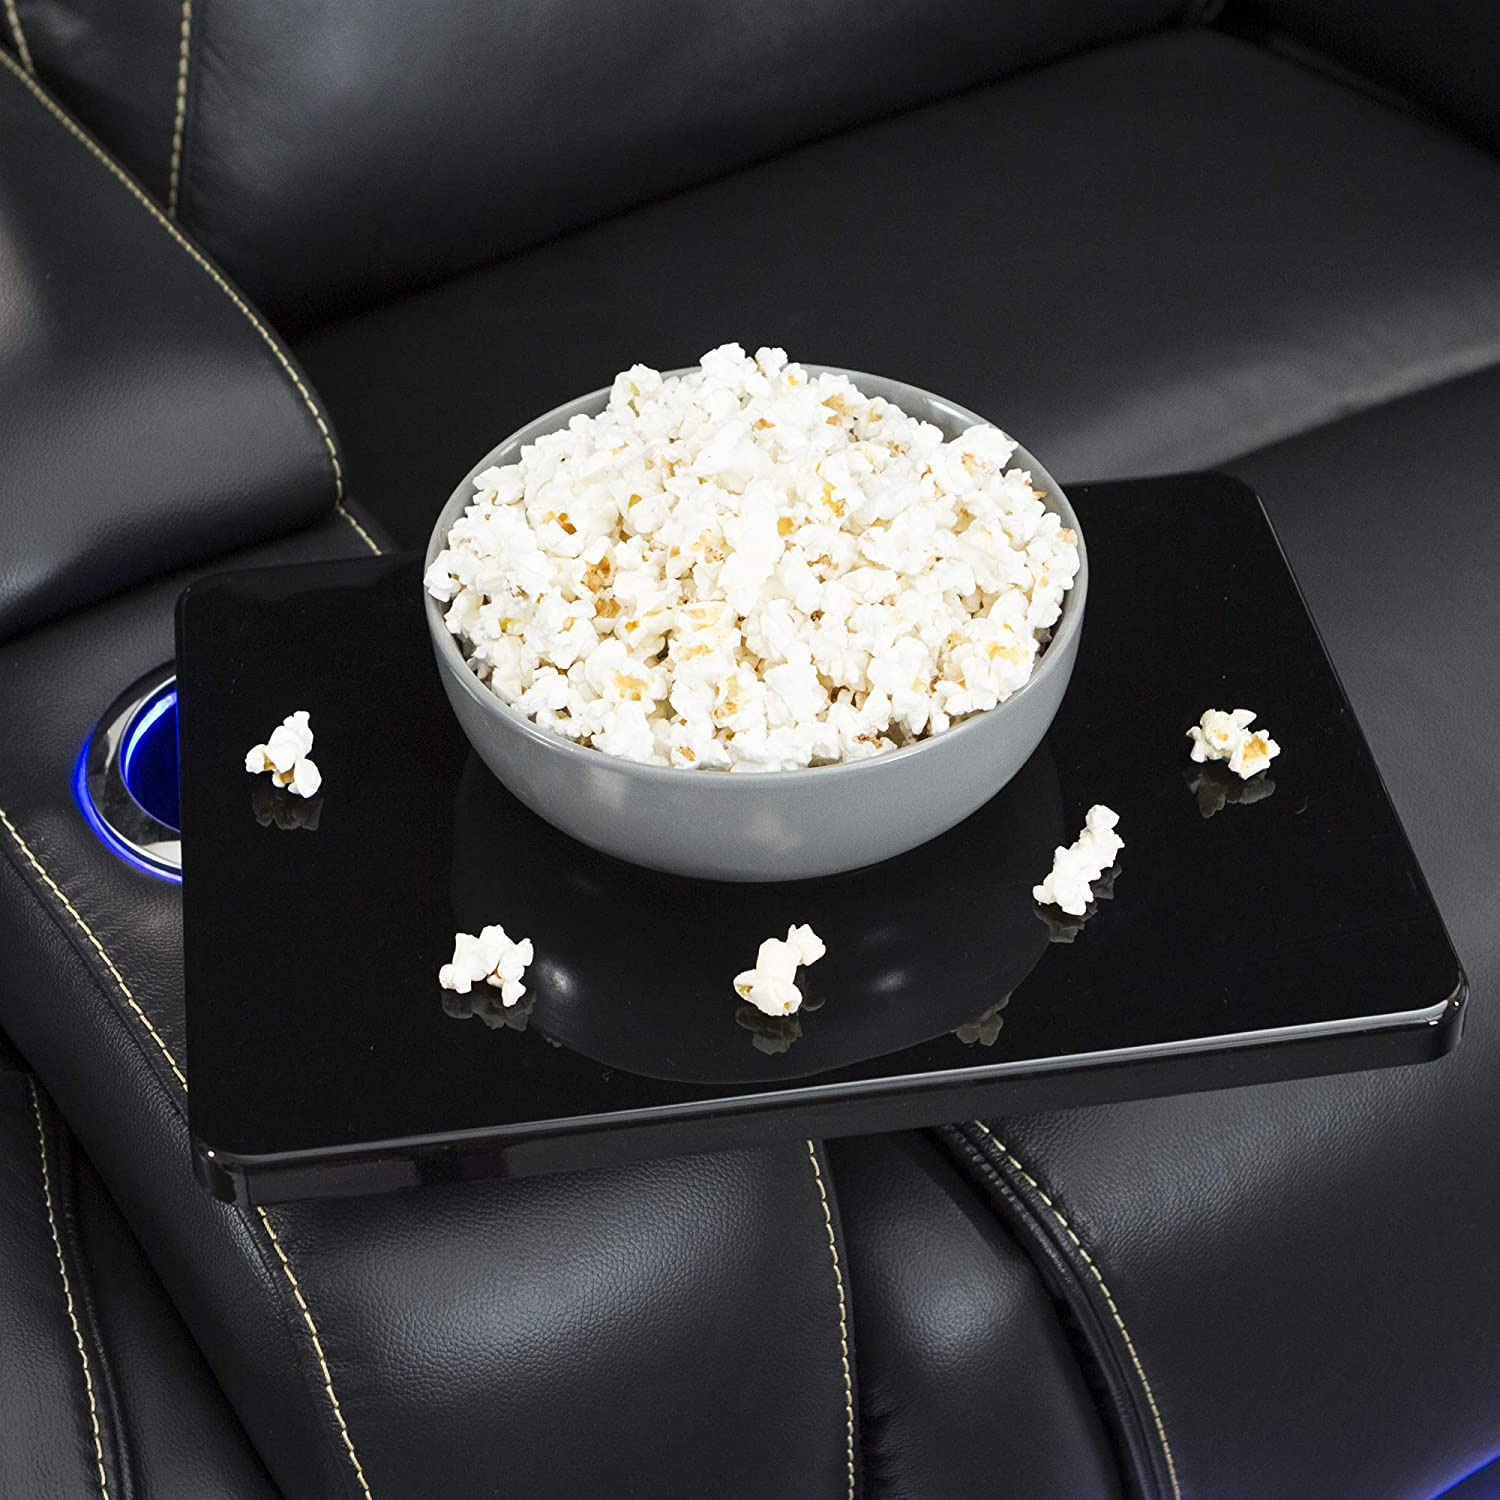 Seatcraft Equinox Home Theater Seating Power Recline Leather Row of 2, Black